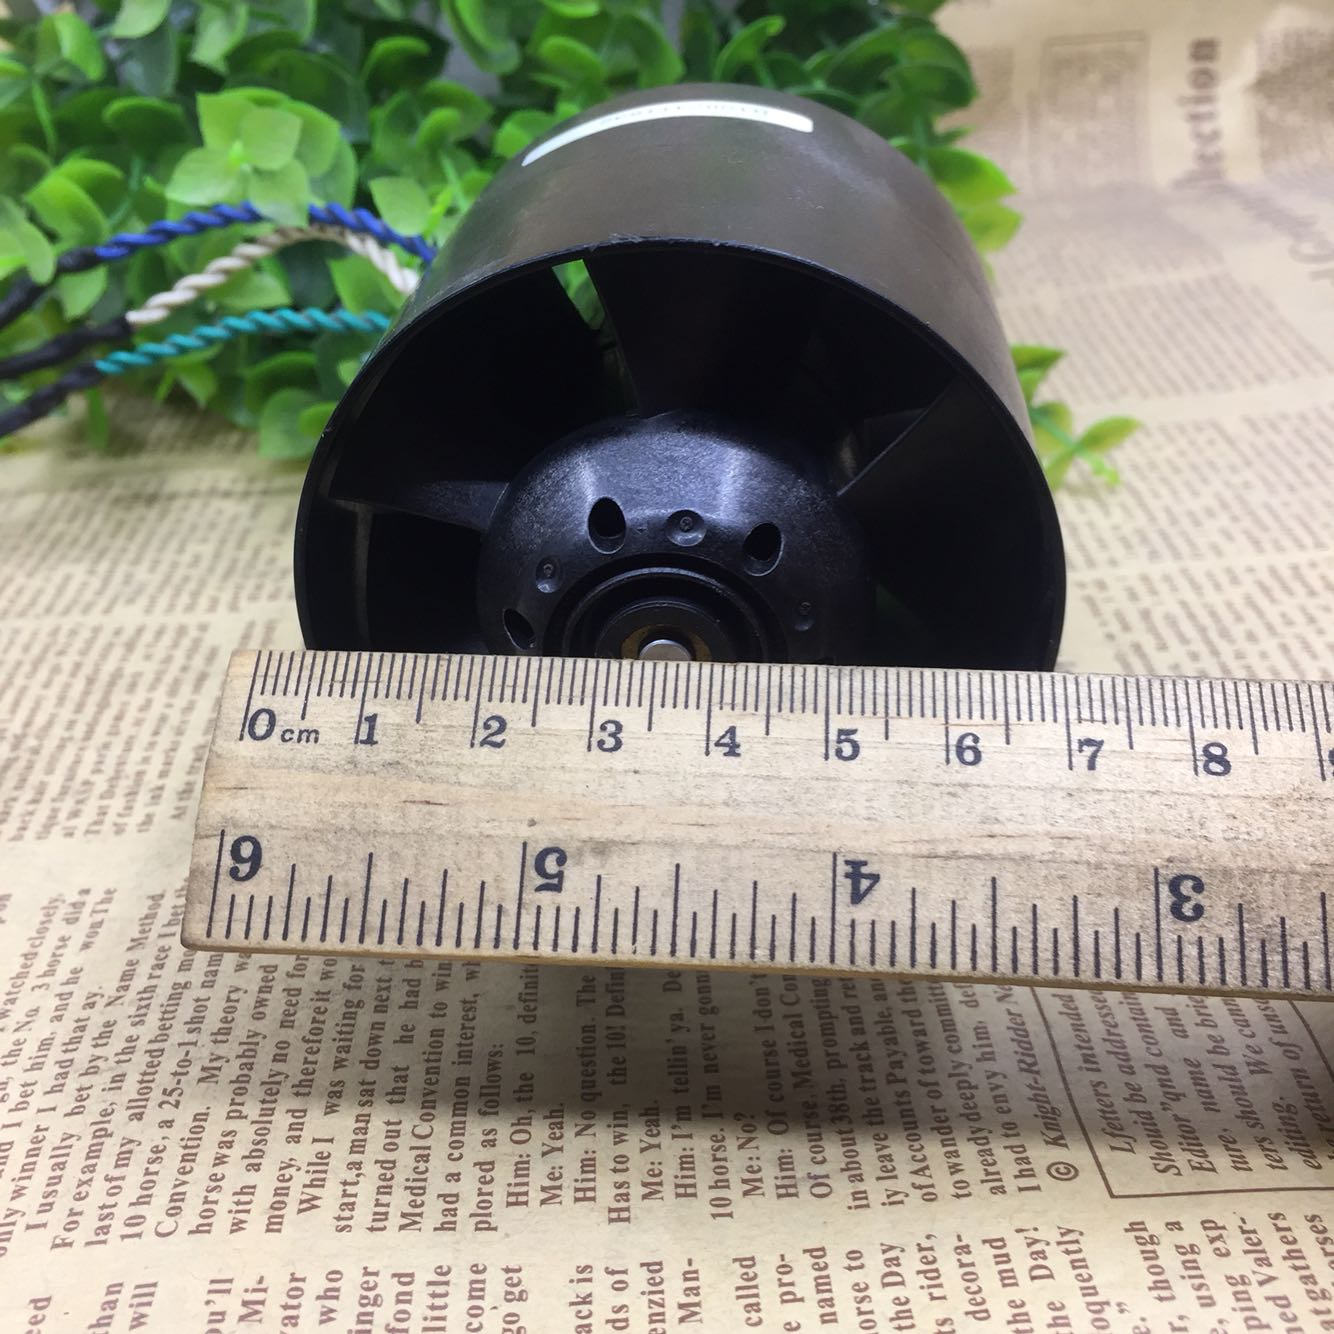 Violence all plastic ducted fan rotor brushless DC motor high-speed